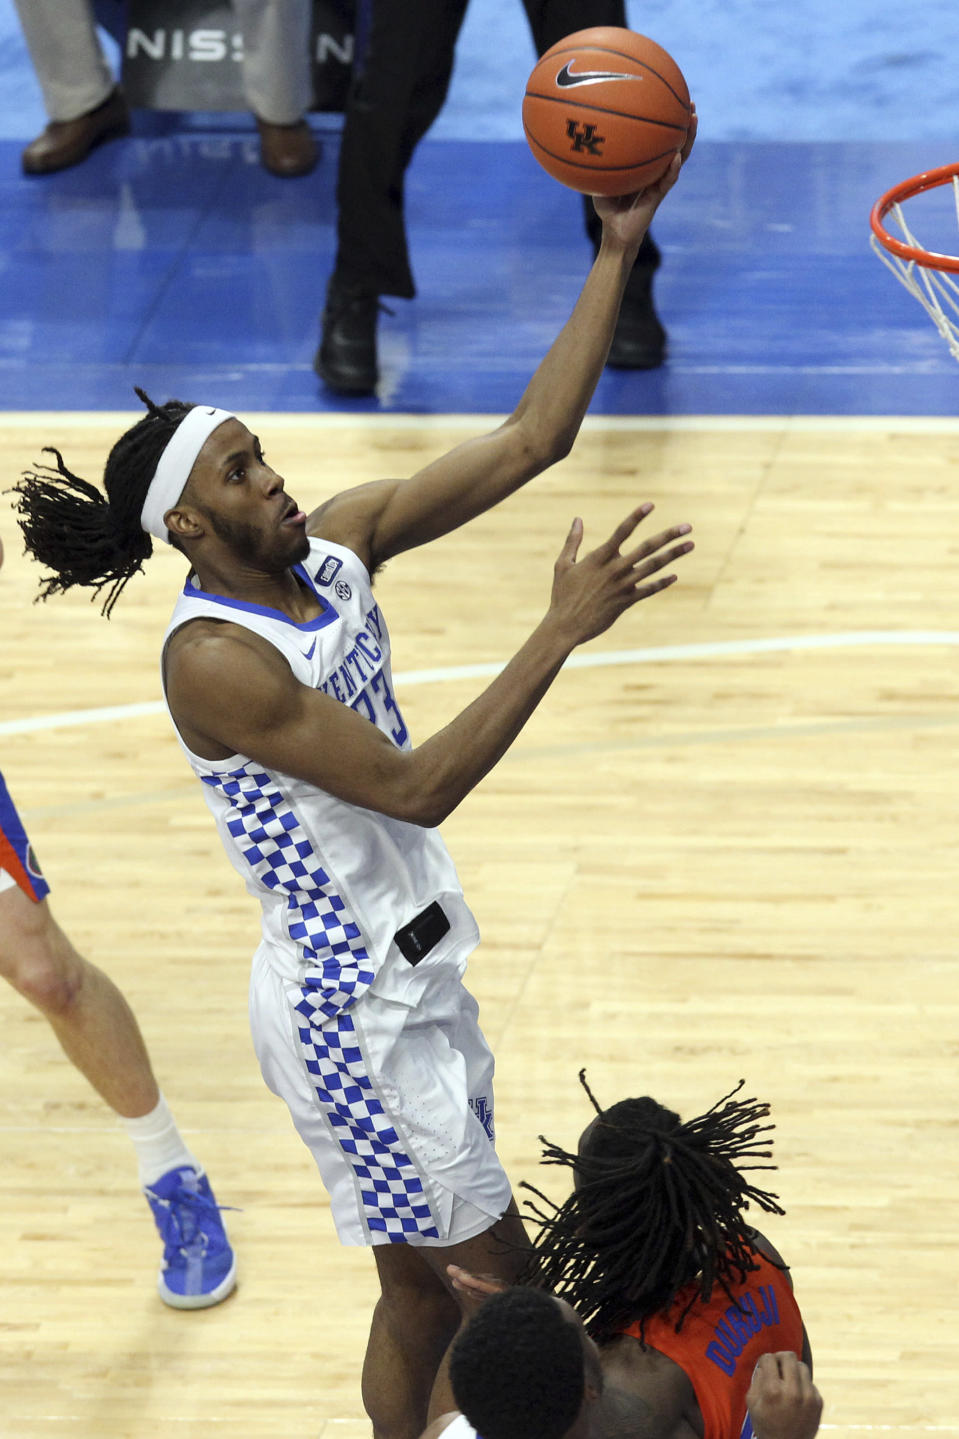 Kentucky's Isaiah Jackson, top, shoots near Florida's Anthony Duruji during the second half of an NCAA college basketball game in Lexington, Ky., Saturday, Feb. 27, 2021. (AP Photo/James Crisp)